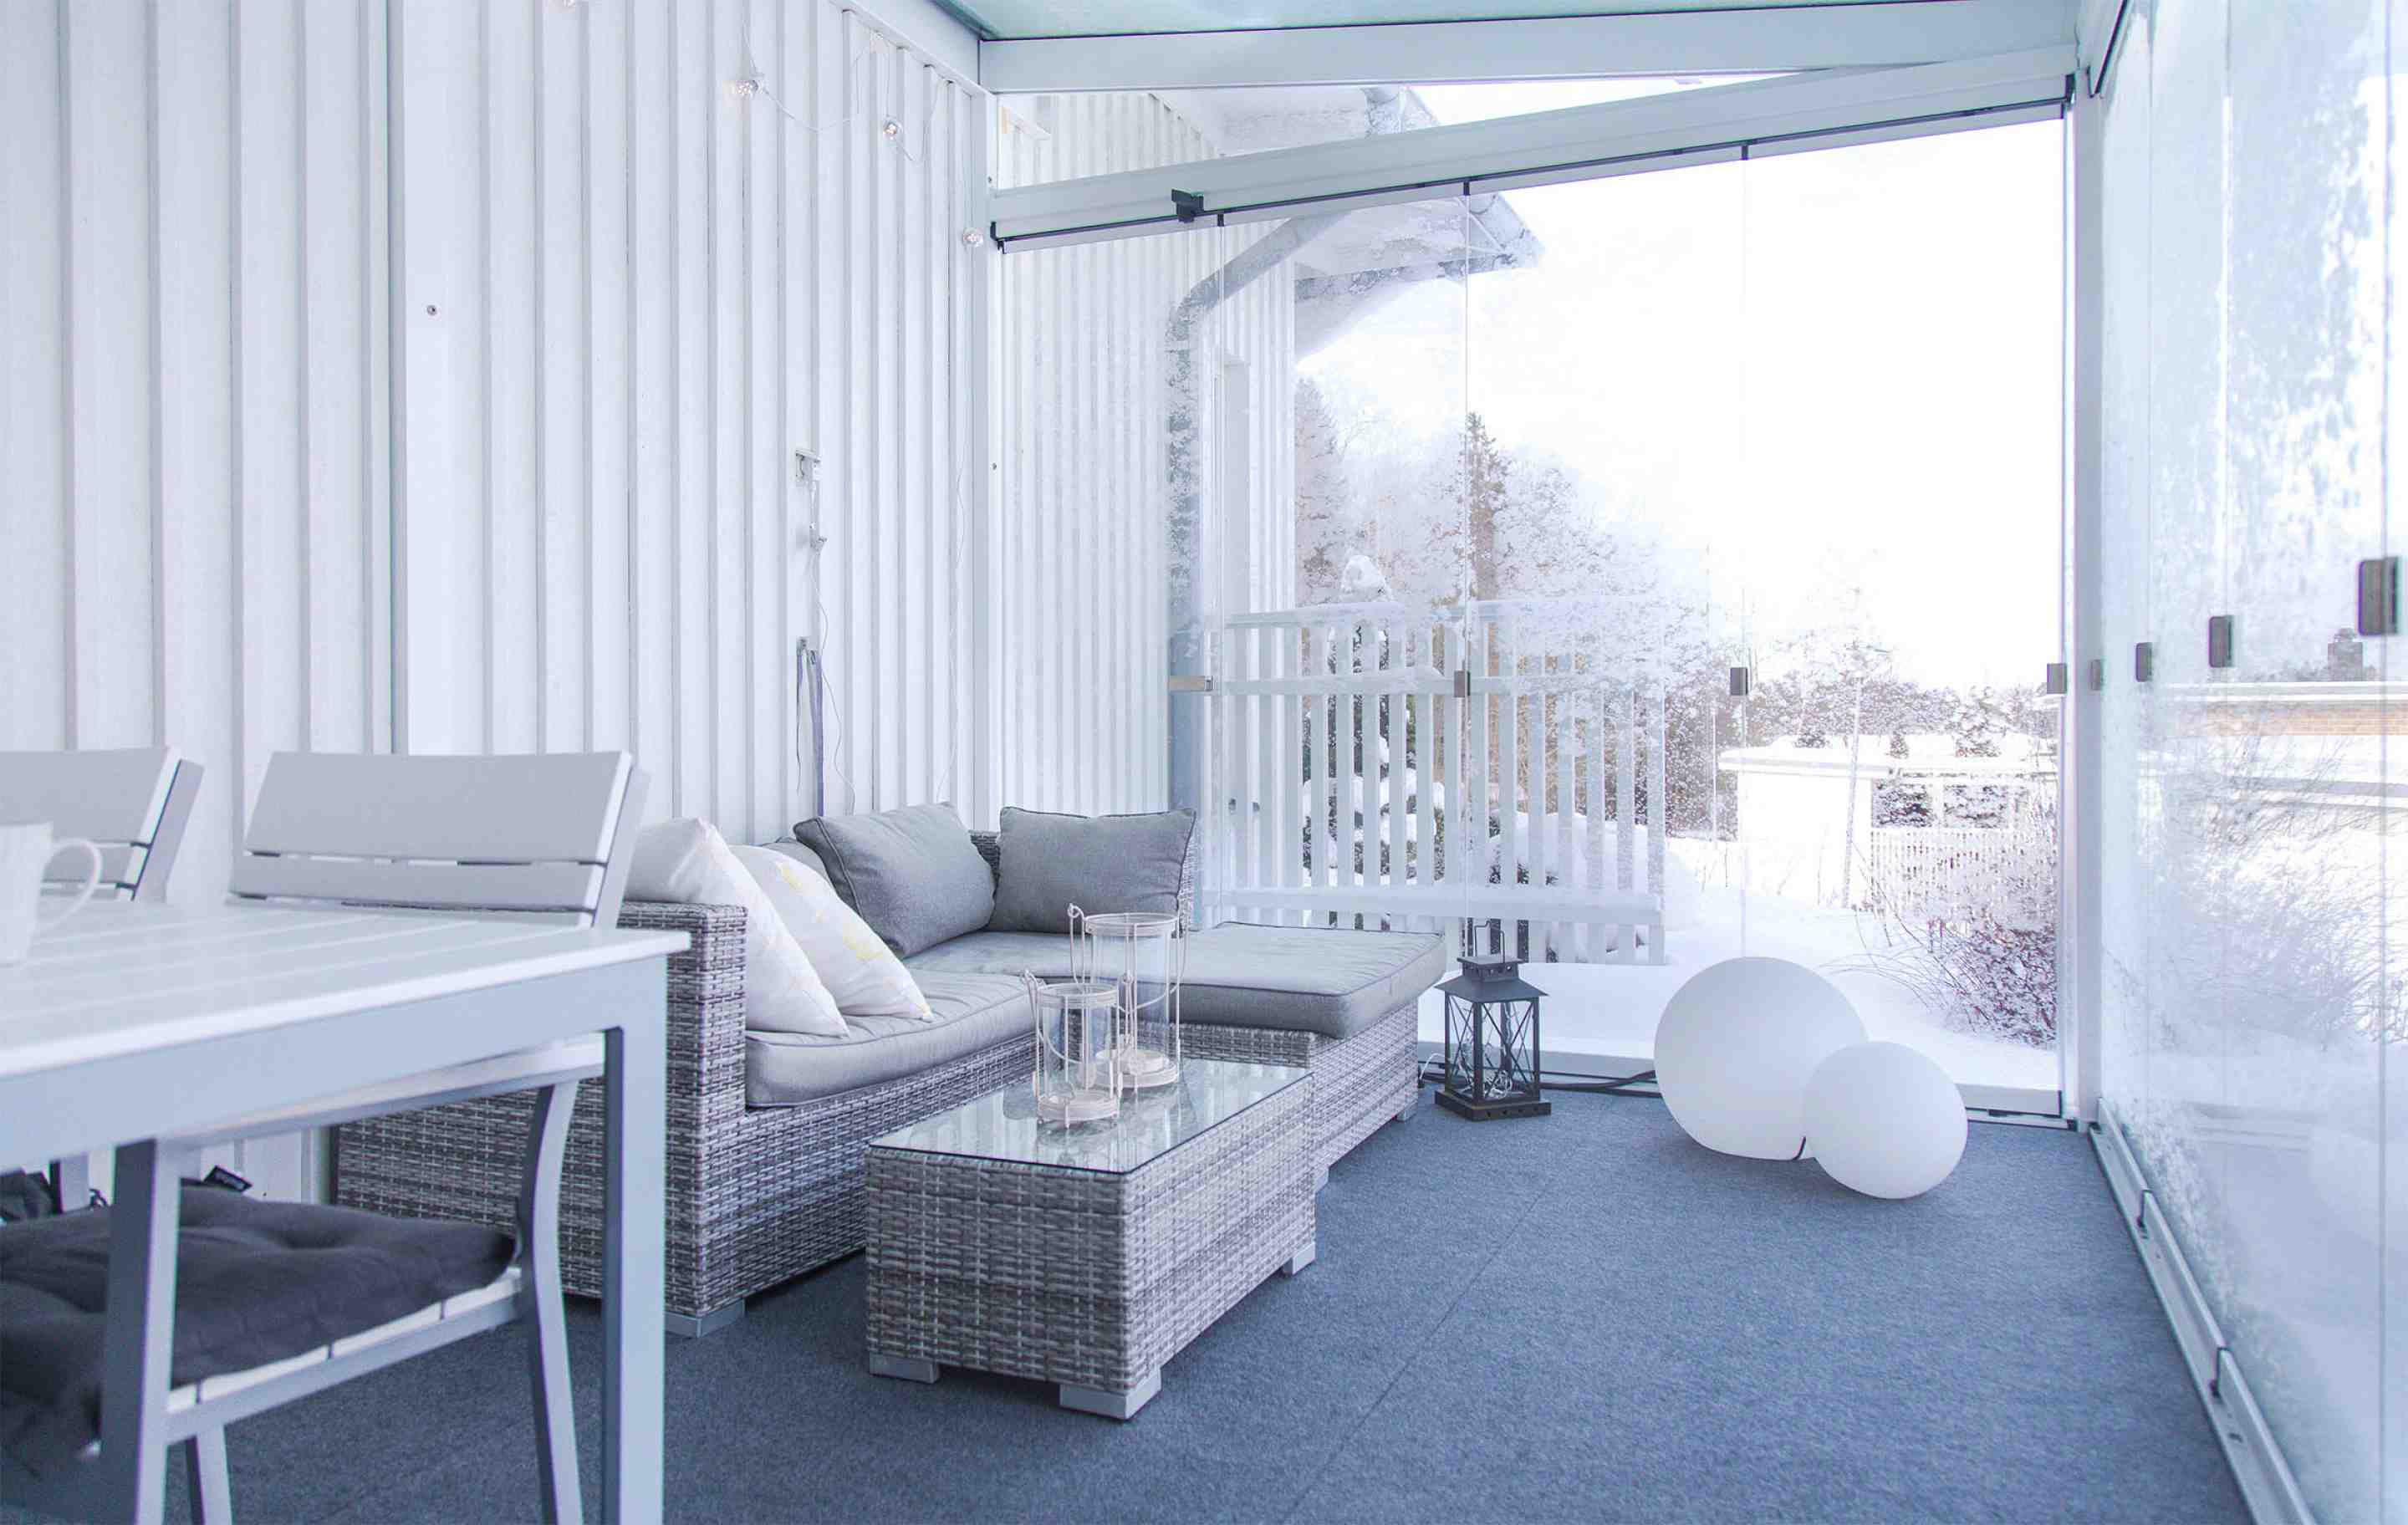 sunroom, sunroom ideas, sunroom additions, sun room, toronto sunroom, terrace in canada